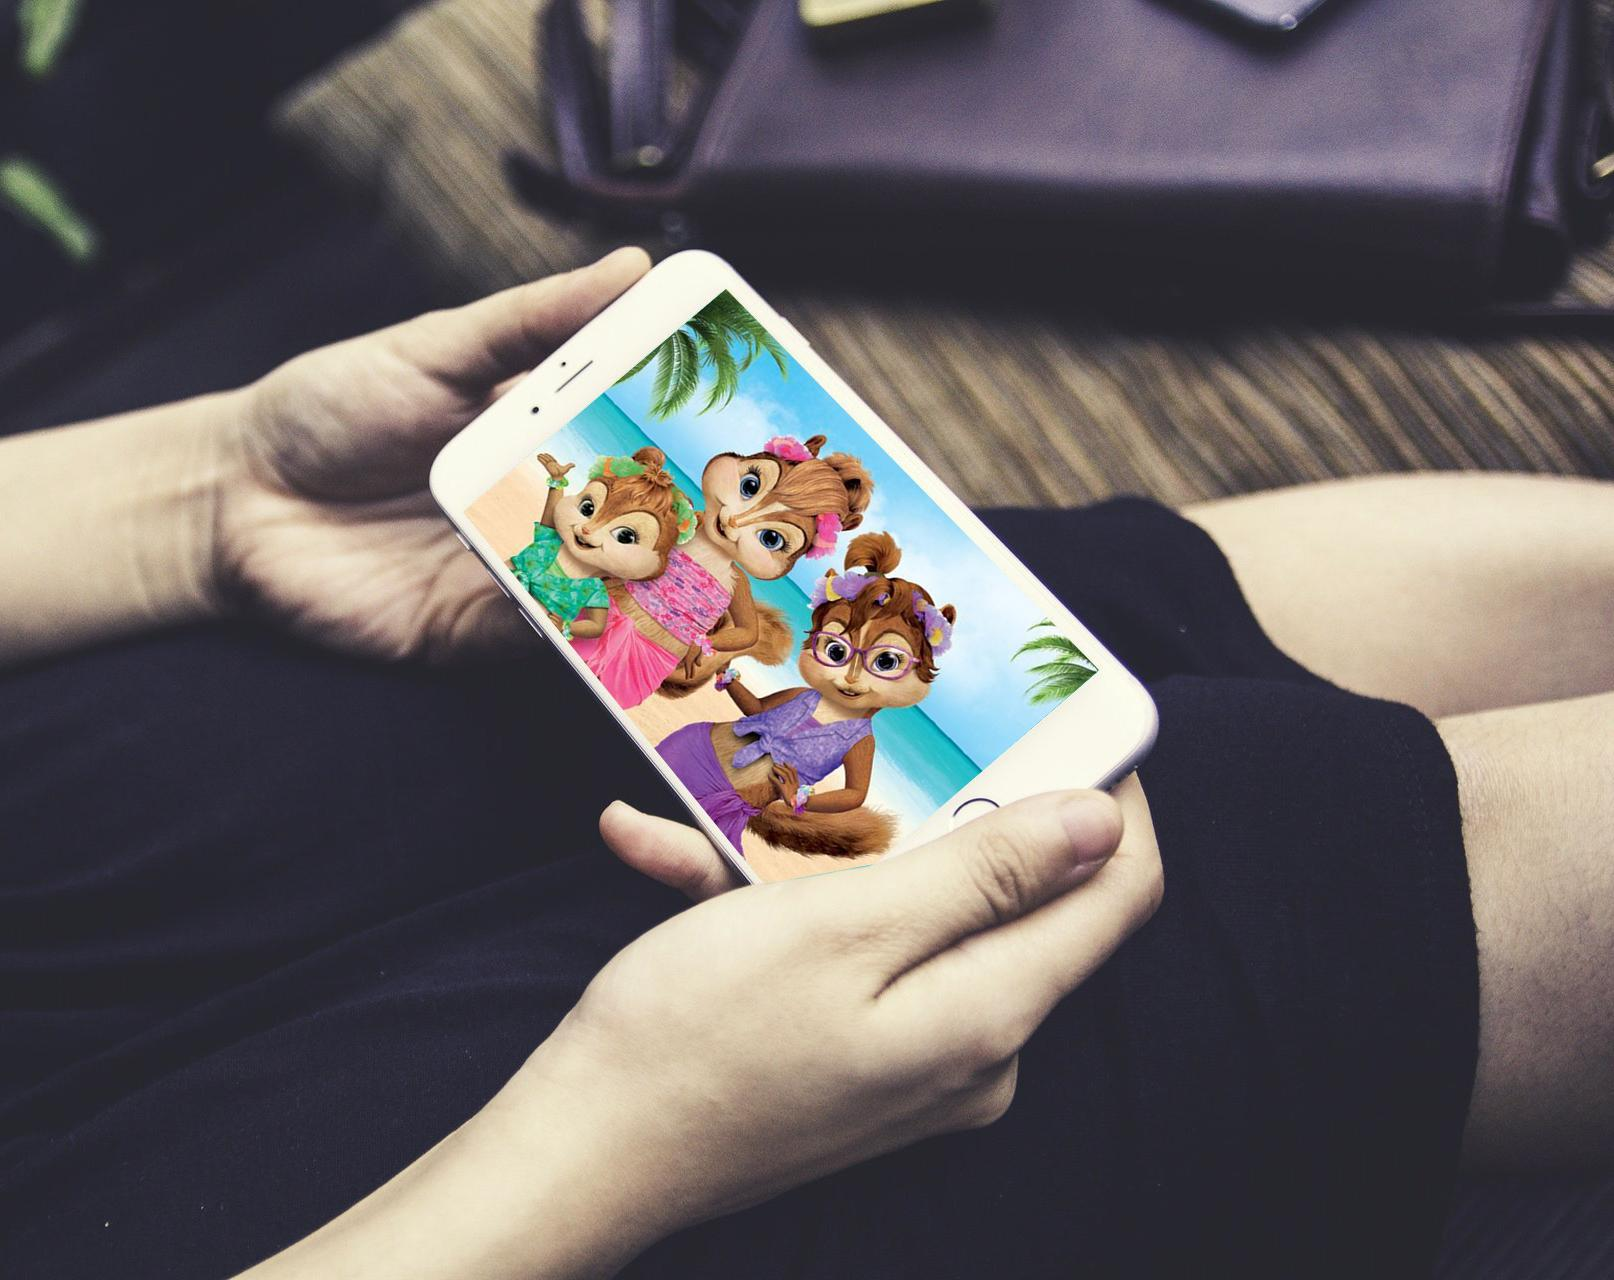 Alvin And The Chipmunks Wallpaper For Android Apk Download